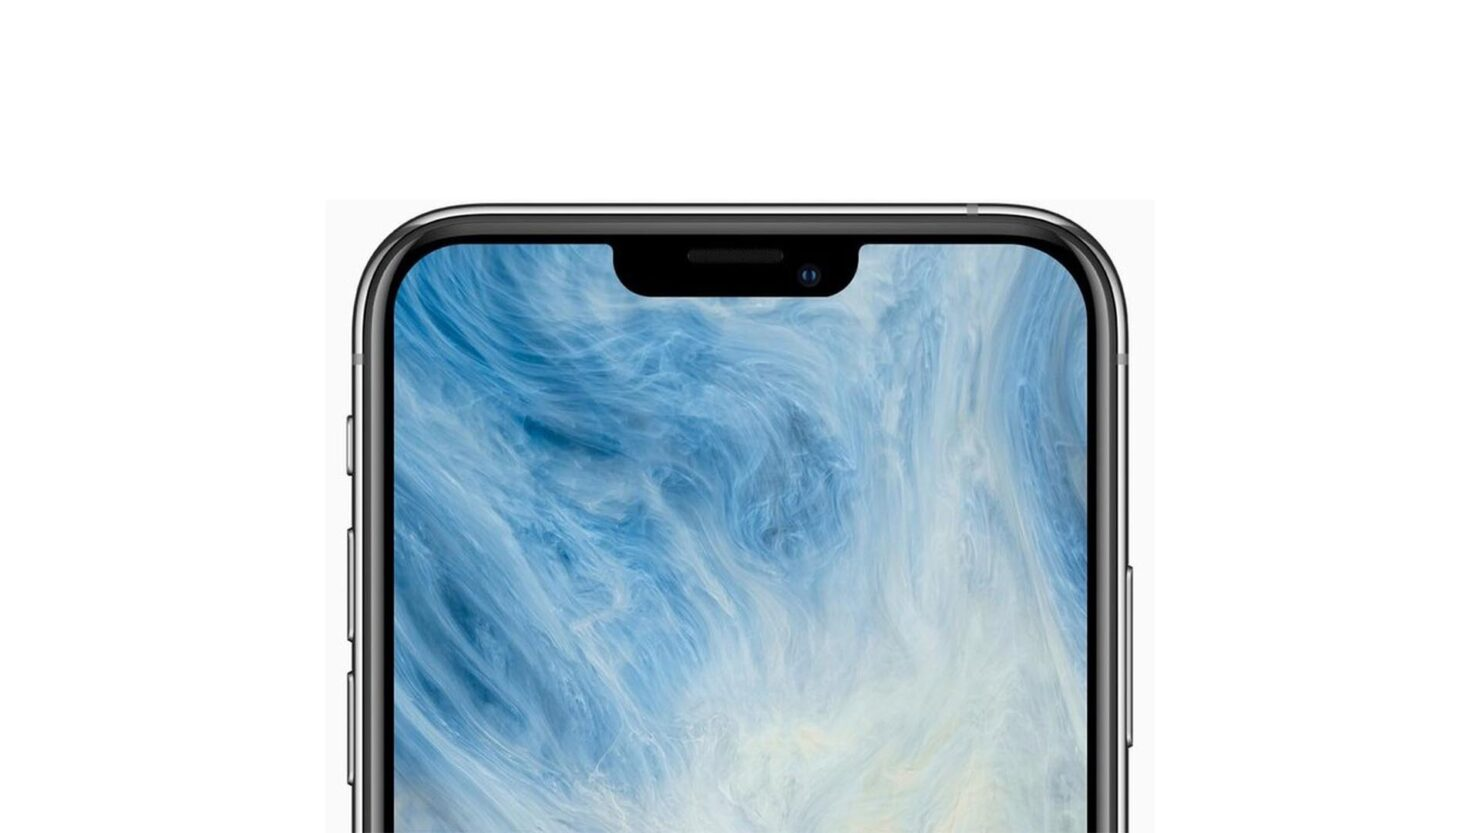 iPhone 14 Lineup to Feature in-screen Touch ID, Smaller Notch Compared to iPhone 13